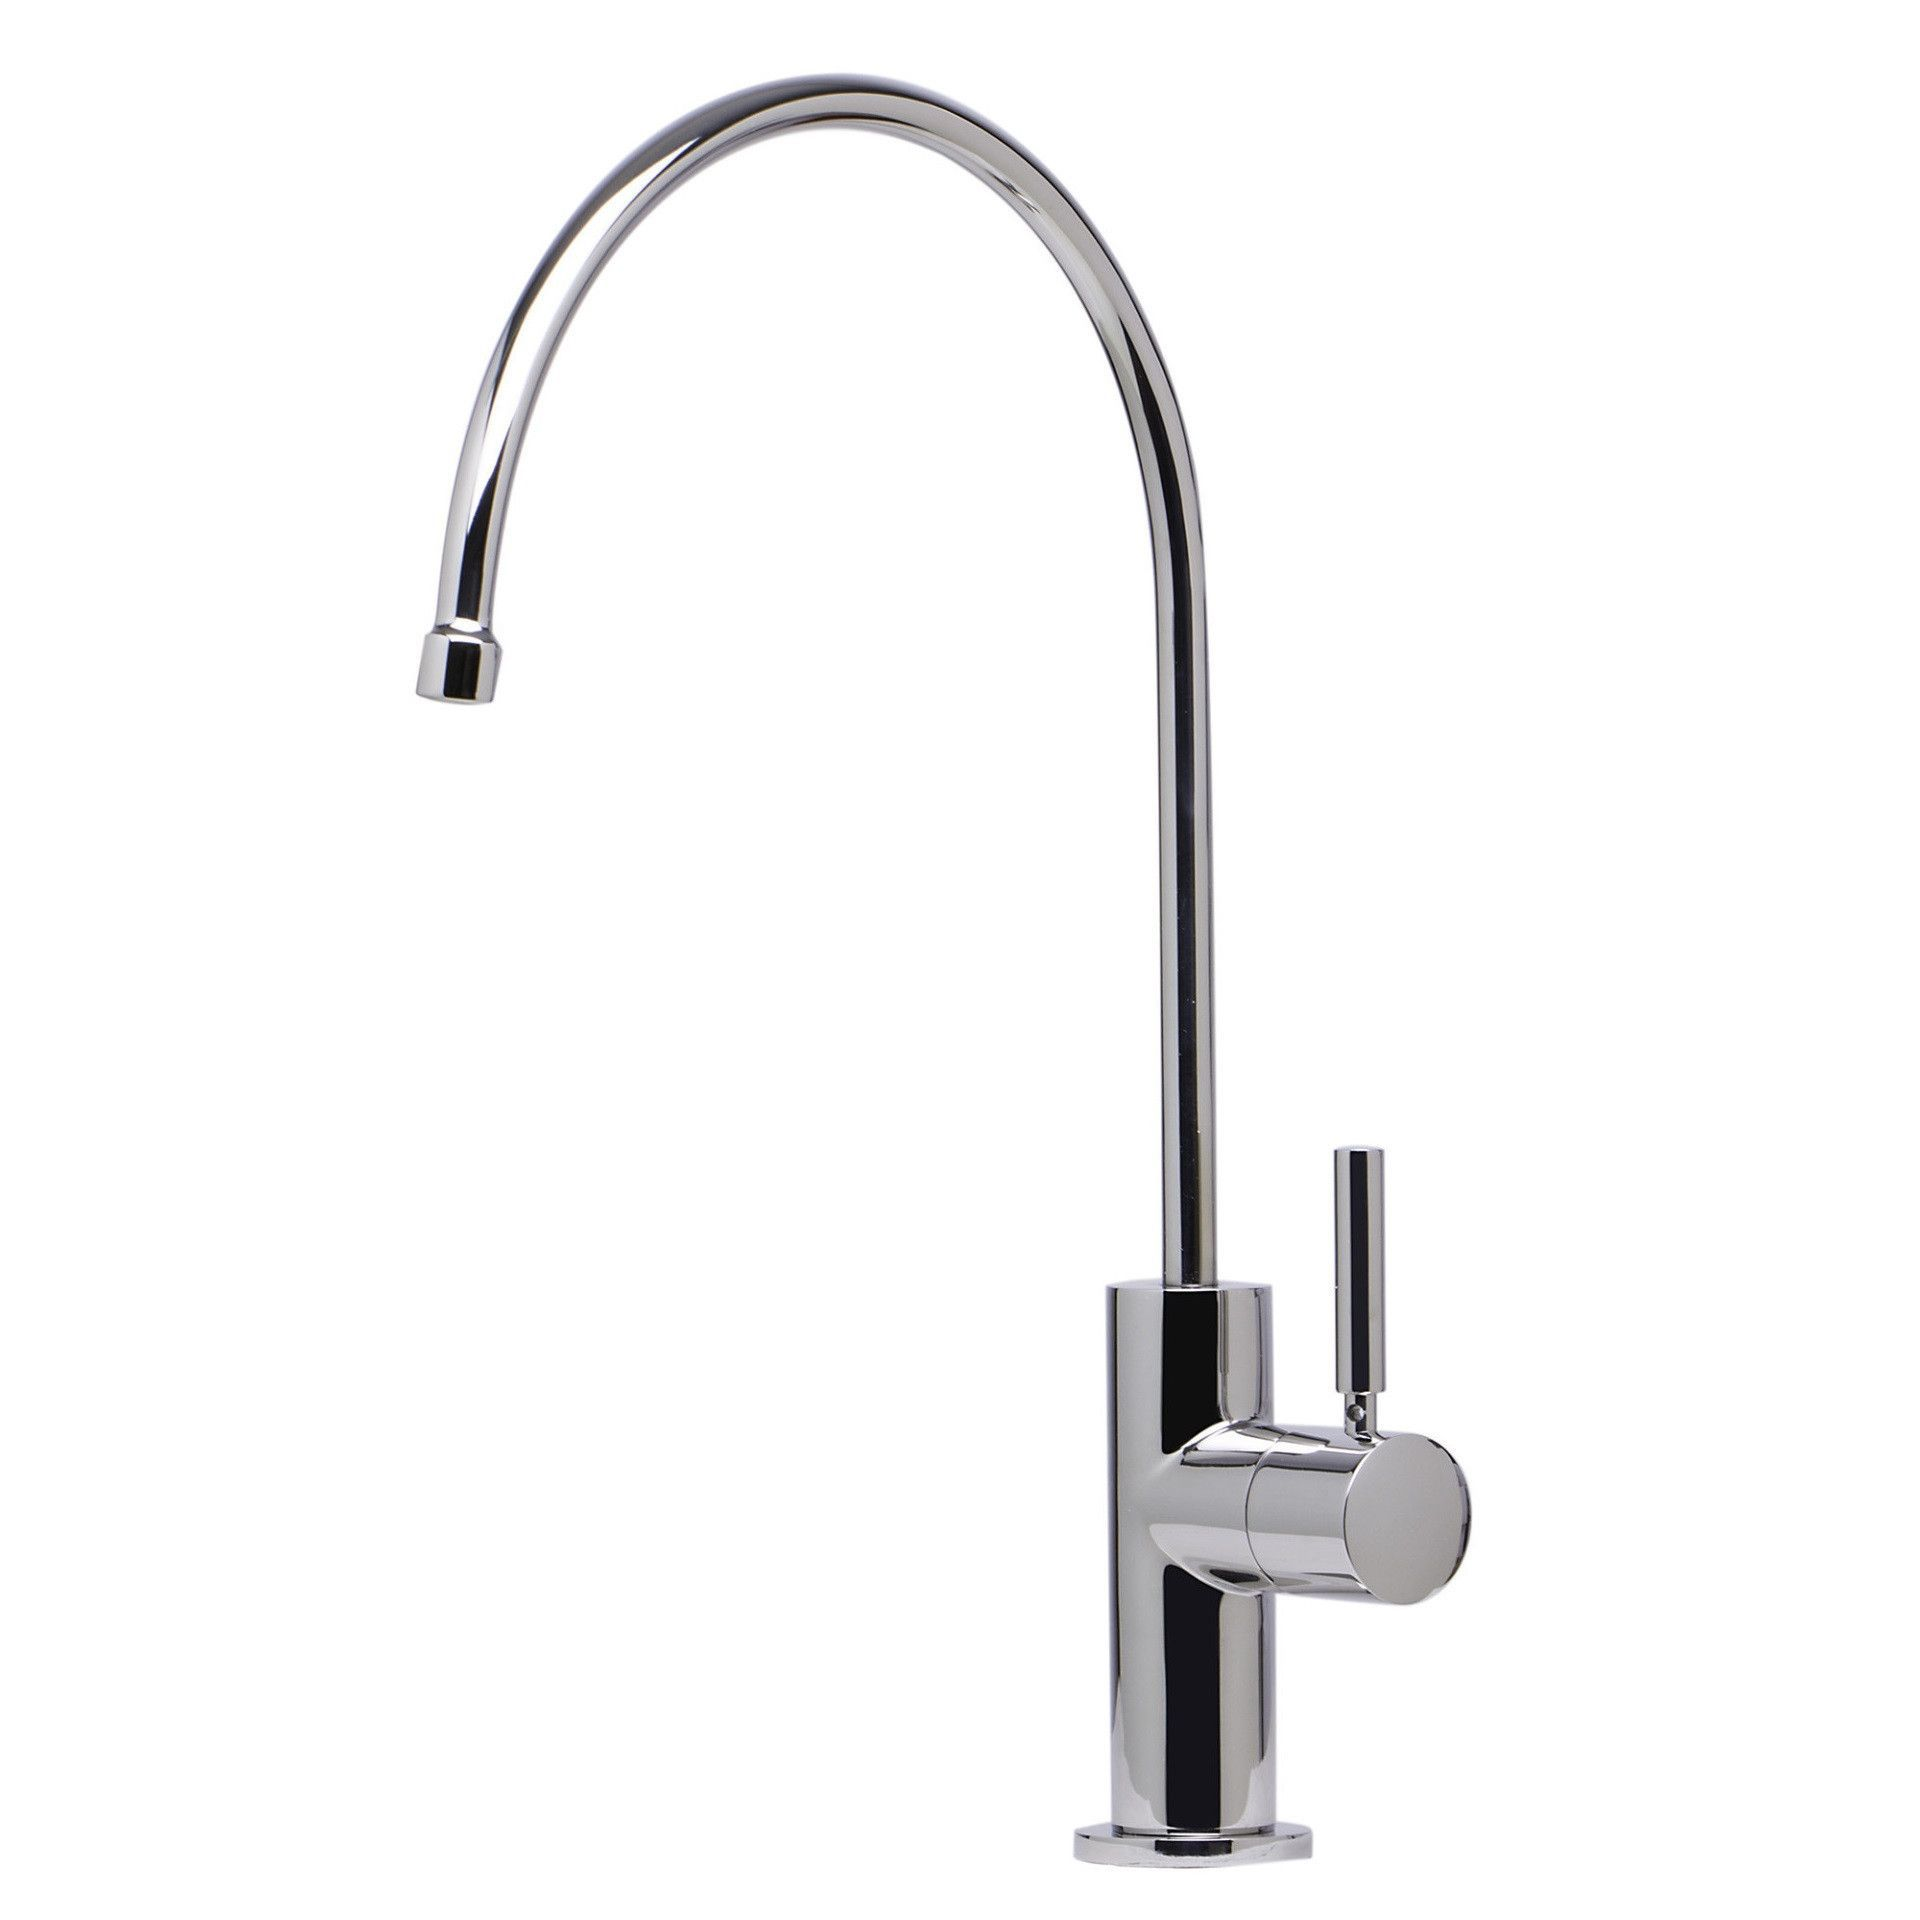 Alfi brand abpss solid polished stainless steel drinking water